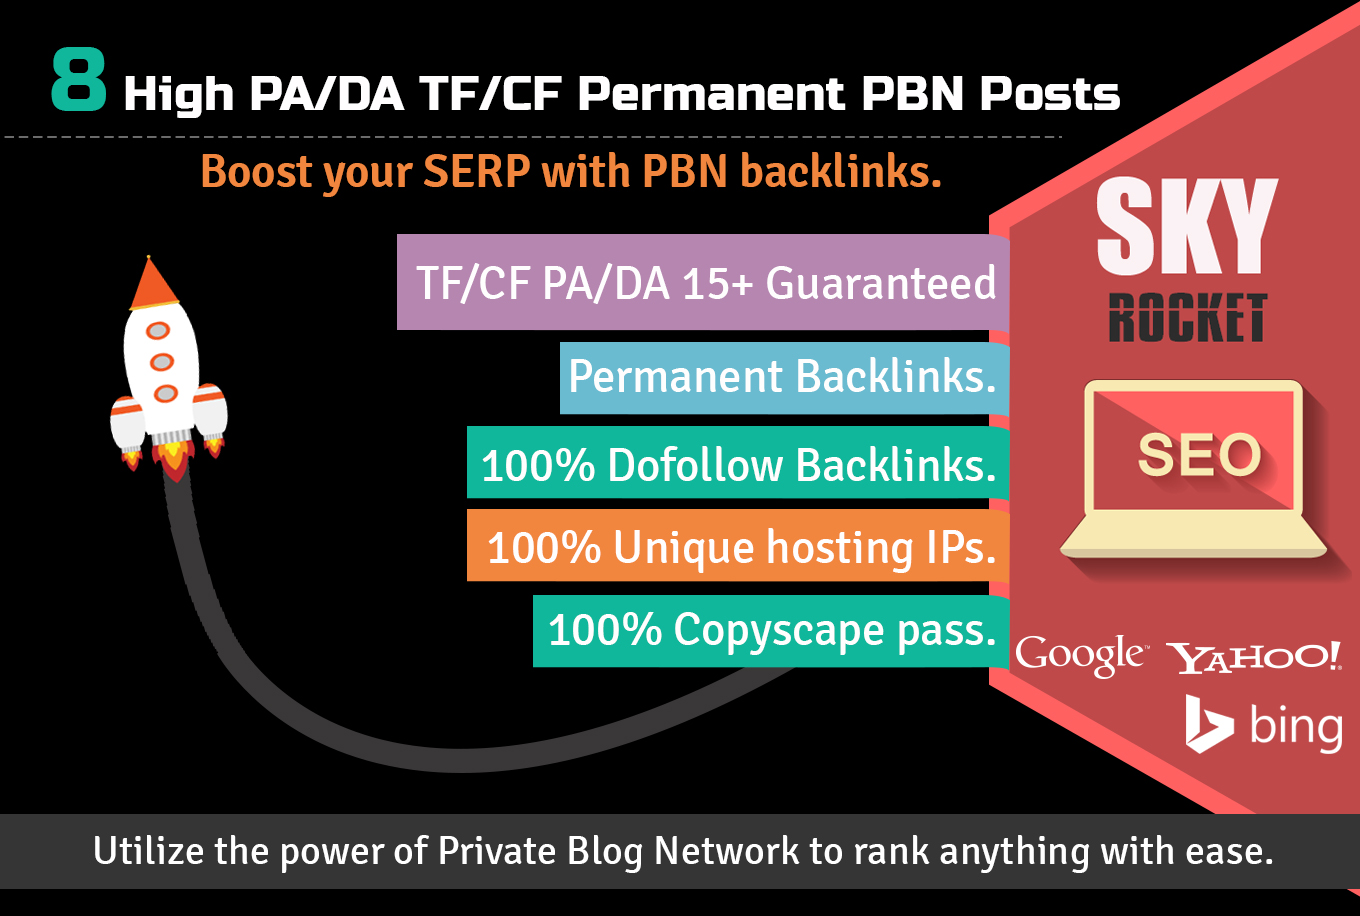 Skyrocket Your Google Rankings With 8 High PA/DA TF/CF Permanent PBN Posts